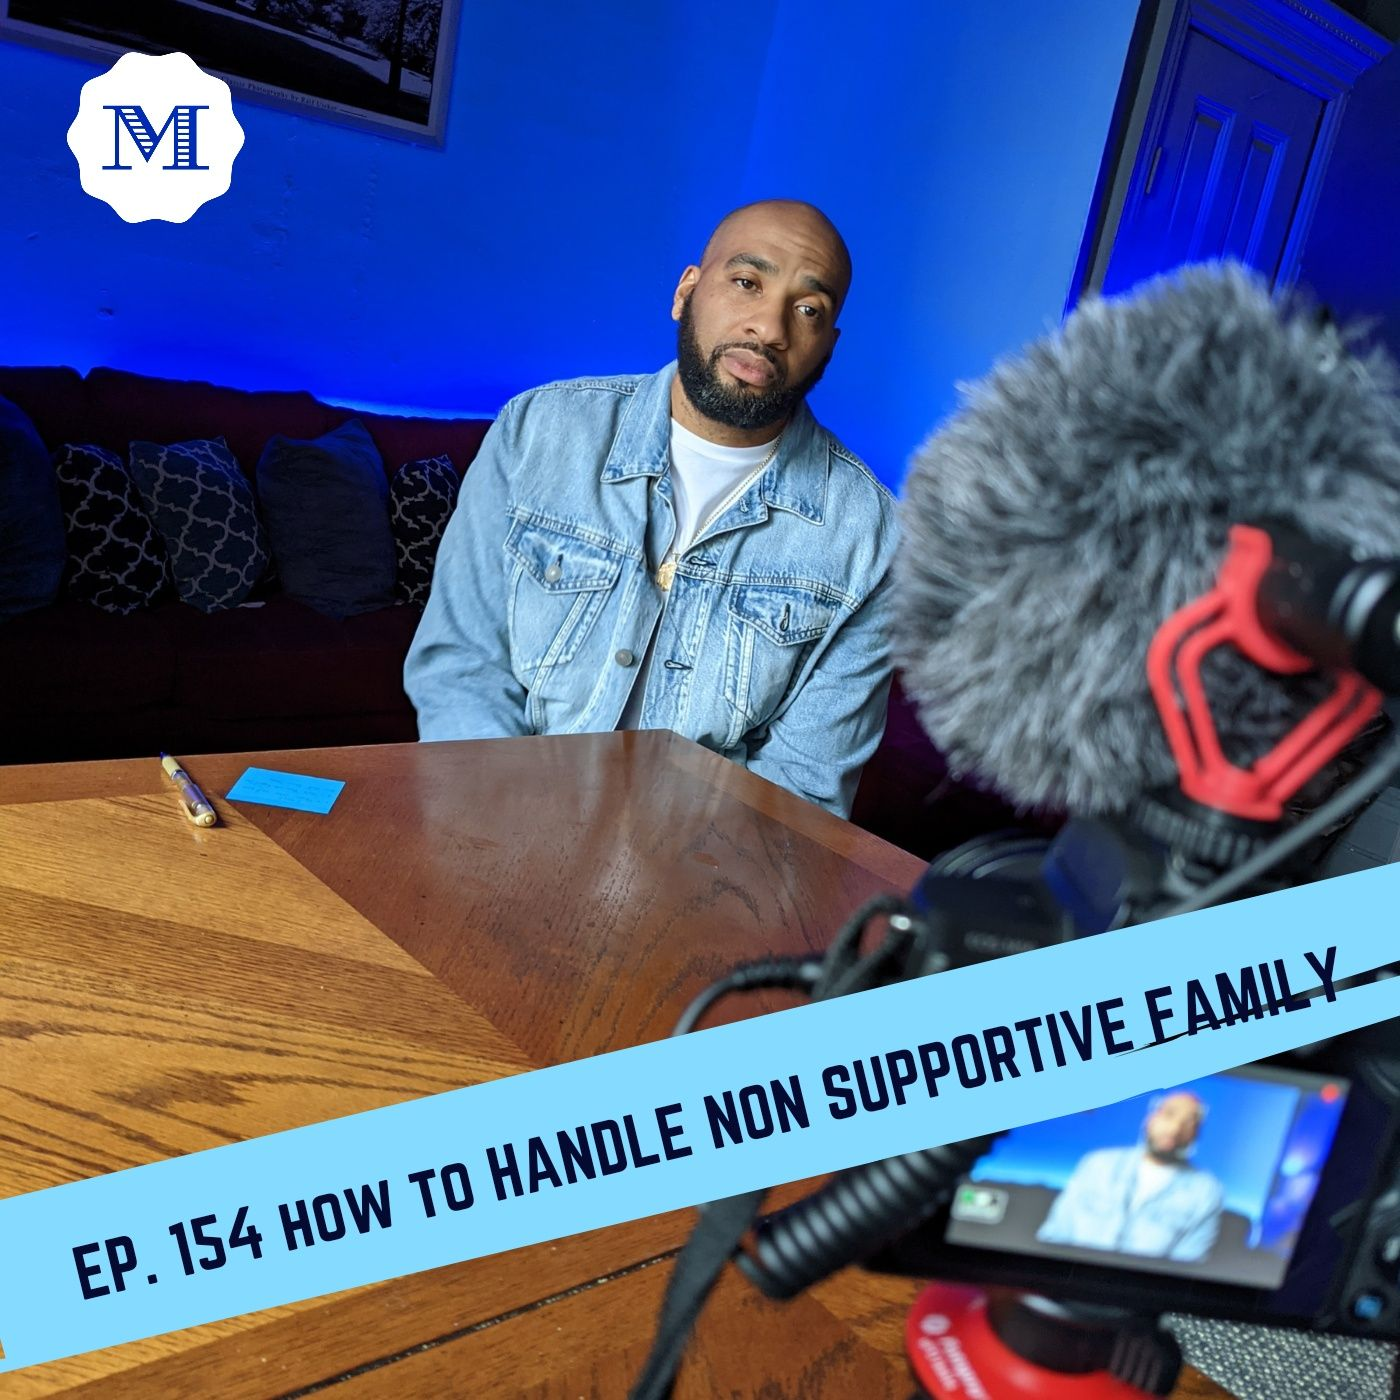 Ep. 154 How to handle non supportive family